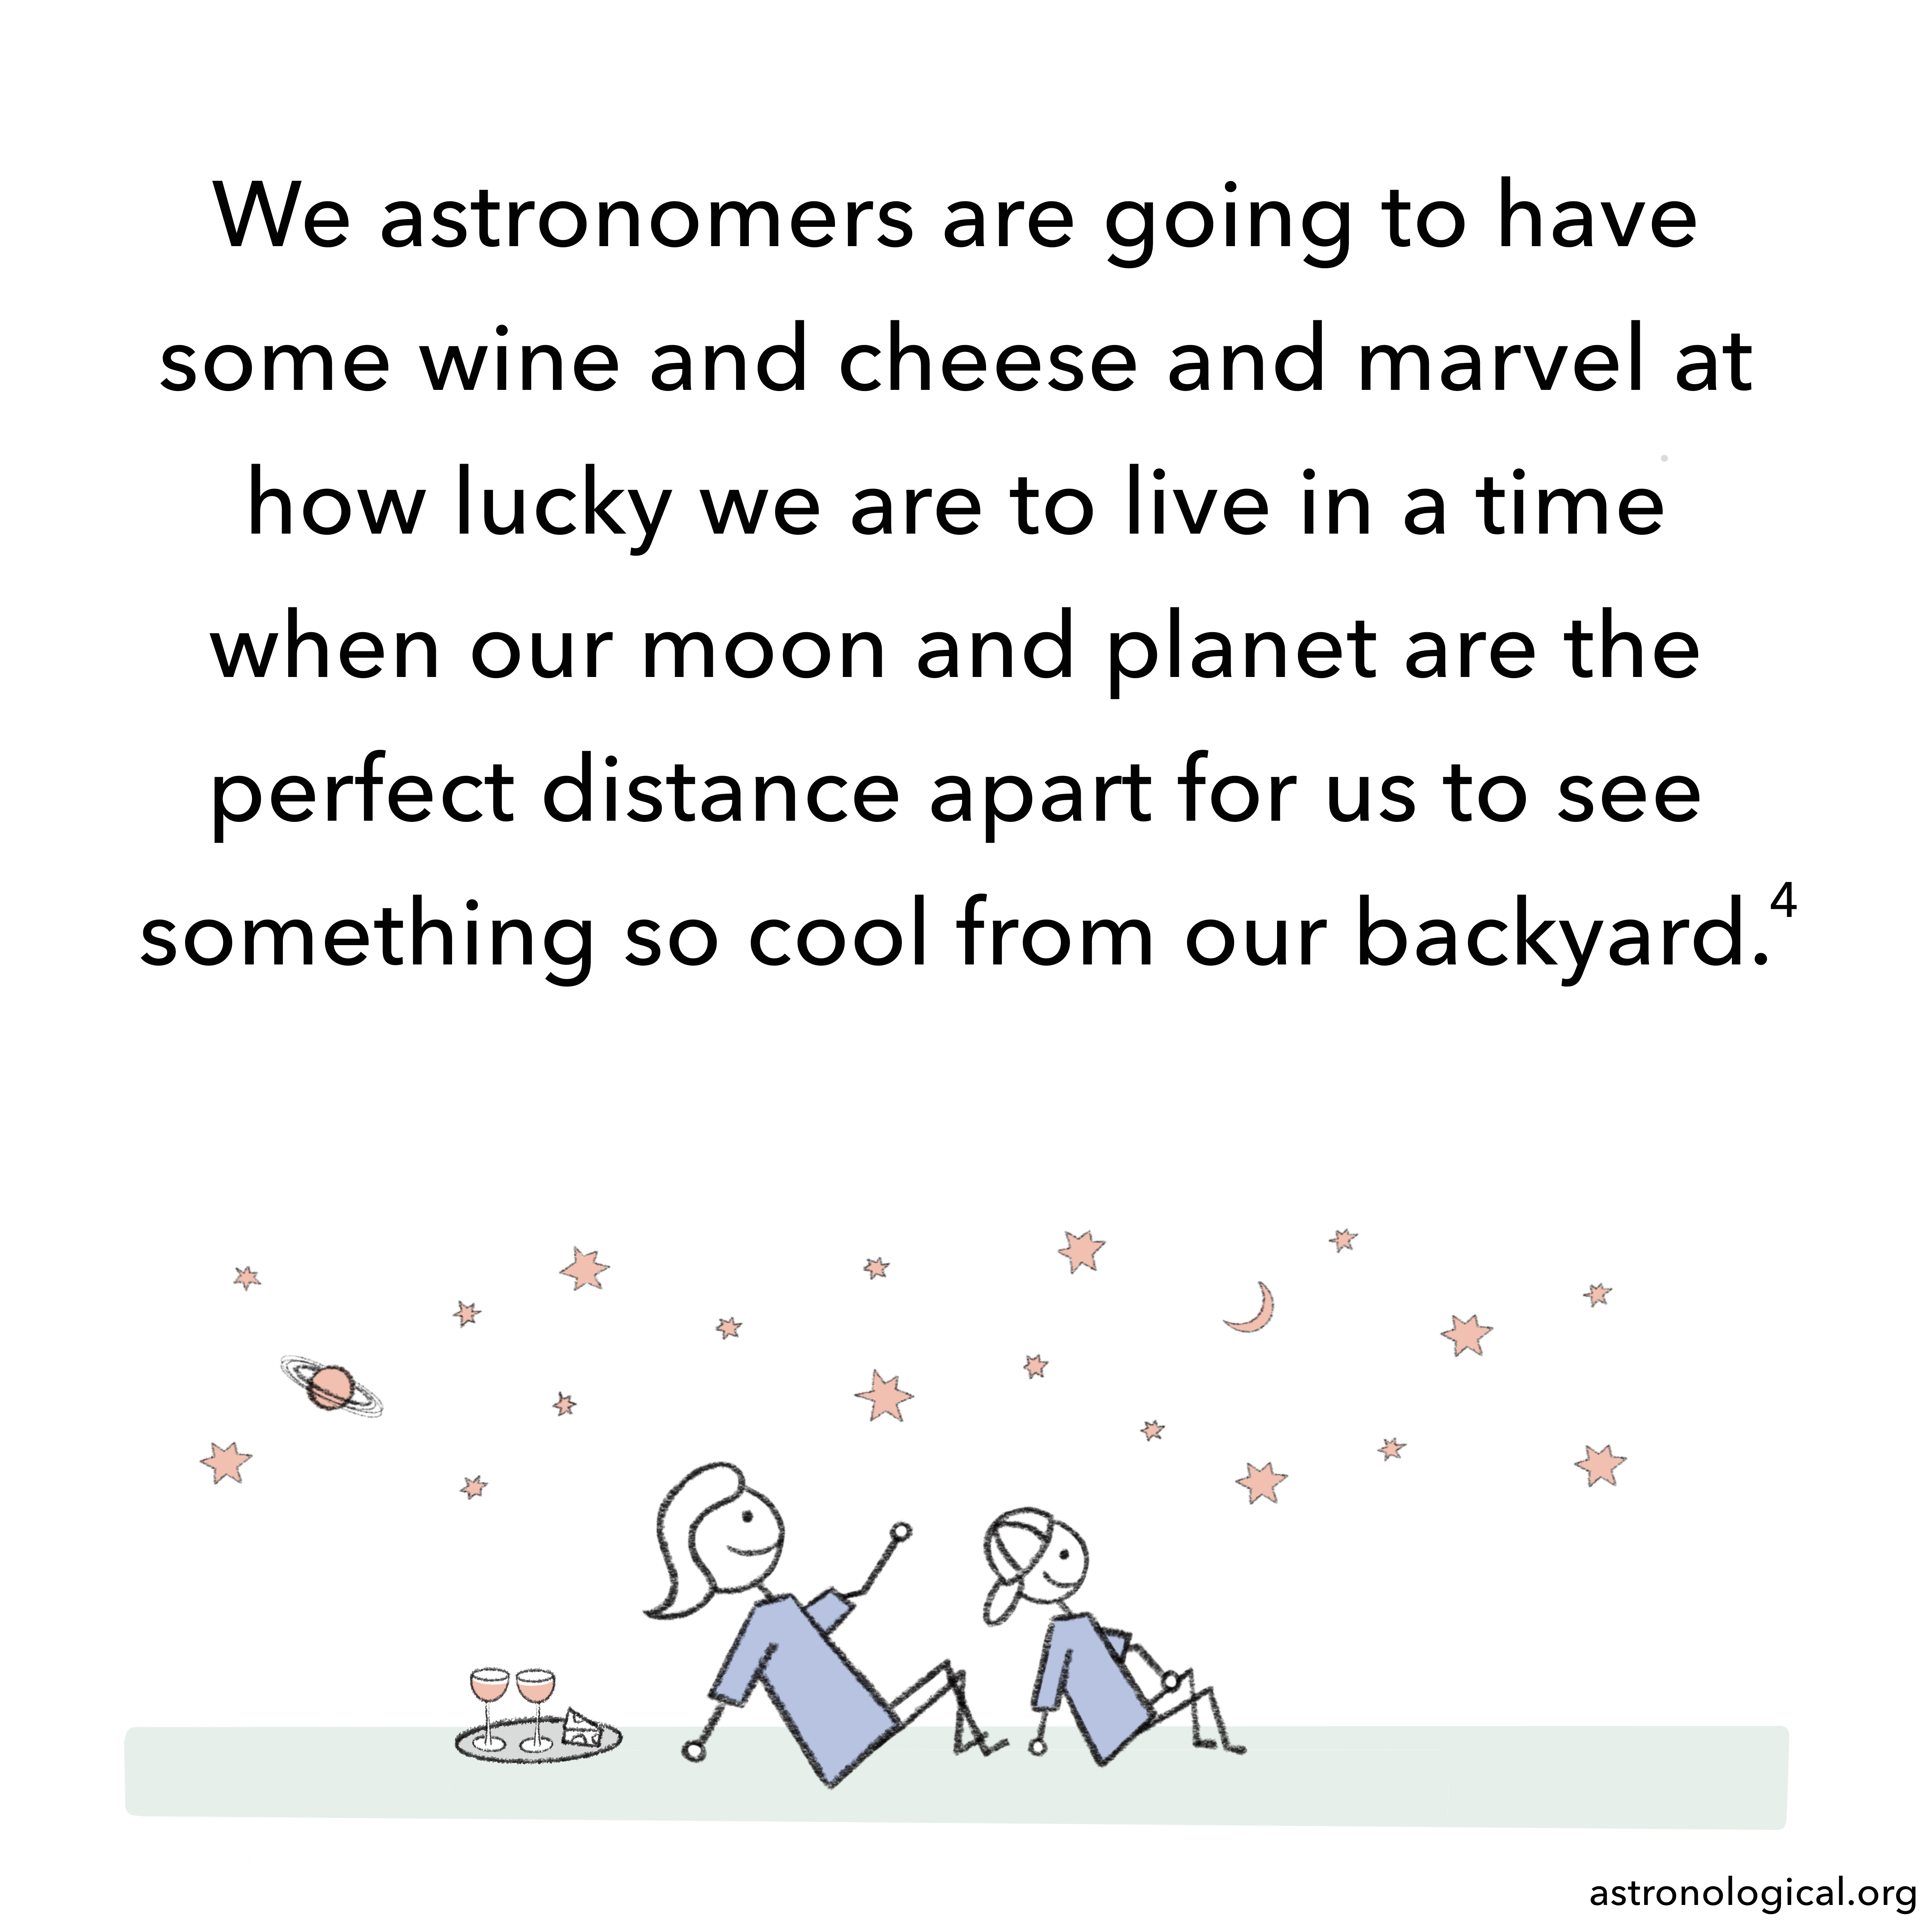 A male and female stick figure are sitting on a lawn next to a tray with red wine cheese on it. They are looking up at the night sky smiling. The text reads: We astronomers are going to have some wine and cheese and marvel at how lucky we are to live in a time when our moon and planet are the perfect distance apart for us to see something so cool from our backyard.